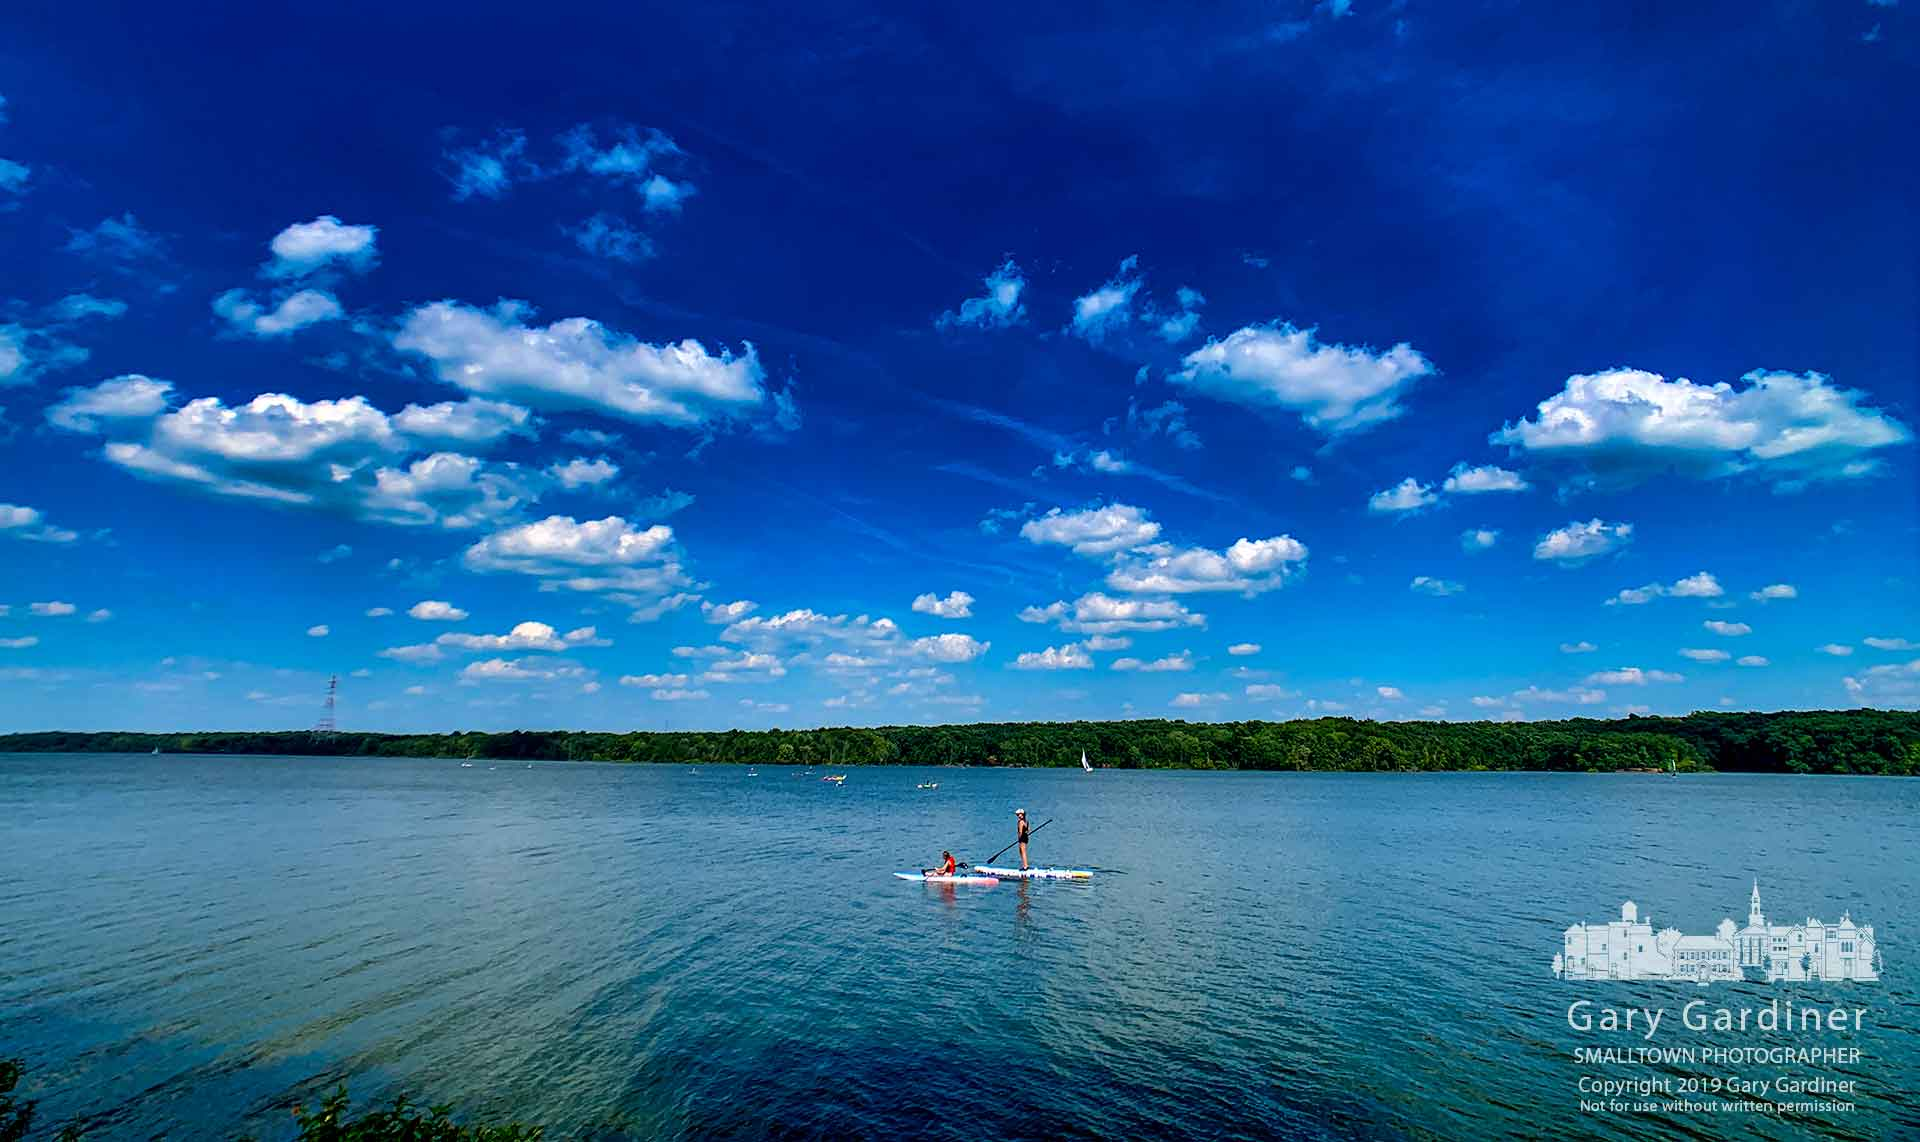 A mother and daughter navigate their paddleboards back to the shore at Hoover Reservoir under a deep blu sky with light cumulous cloud cover on a warm late July afternoon. My Final Photo for July 27, 2019.